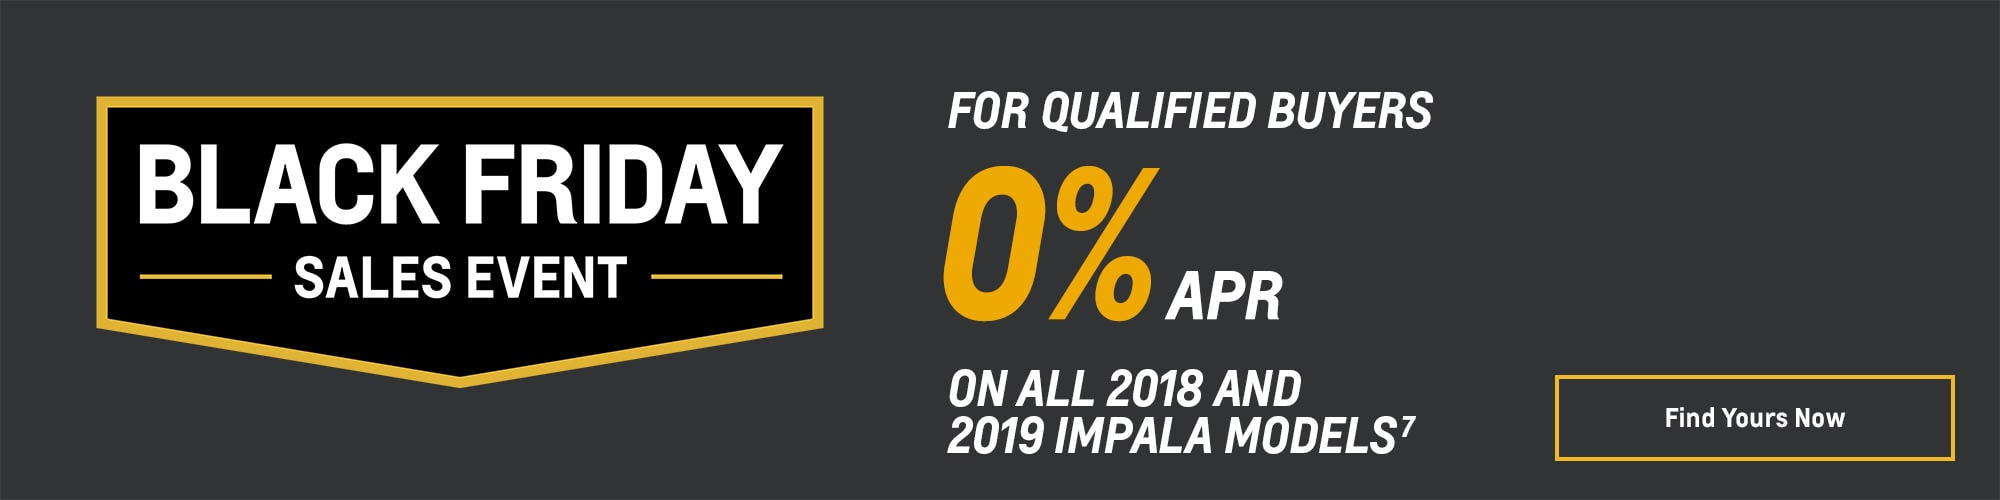 Black Friday Chevy Deals and Offers: Impala 0% APR